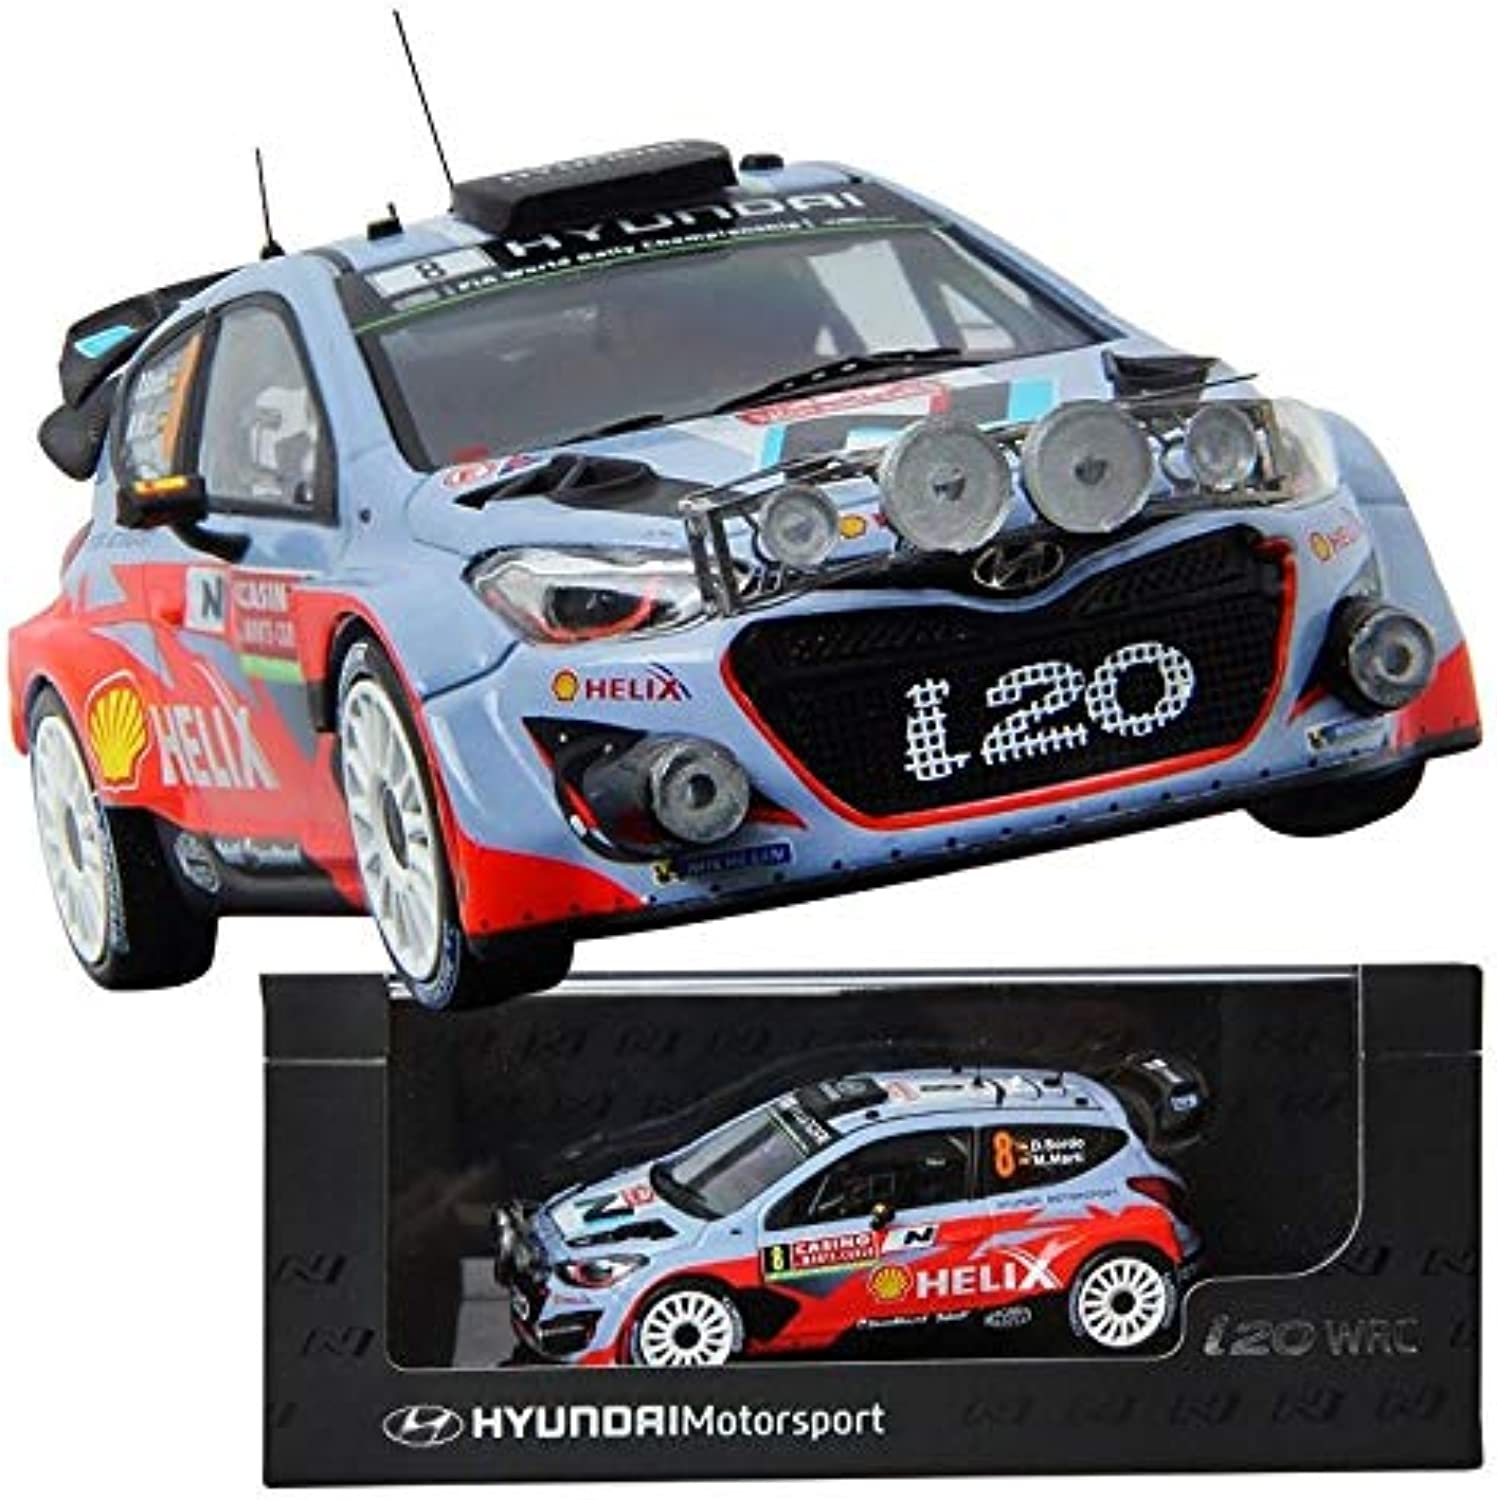 Pino B&D i20 WRC no.8 1 43 Display Model car Motor Sports Miniature